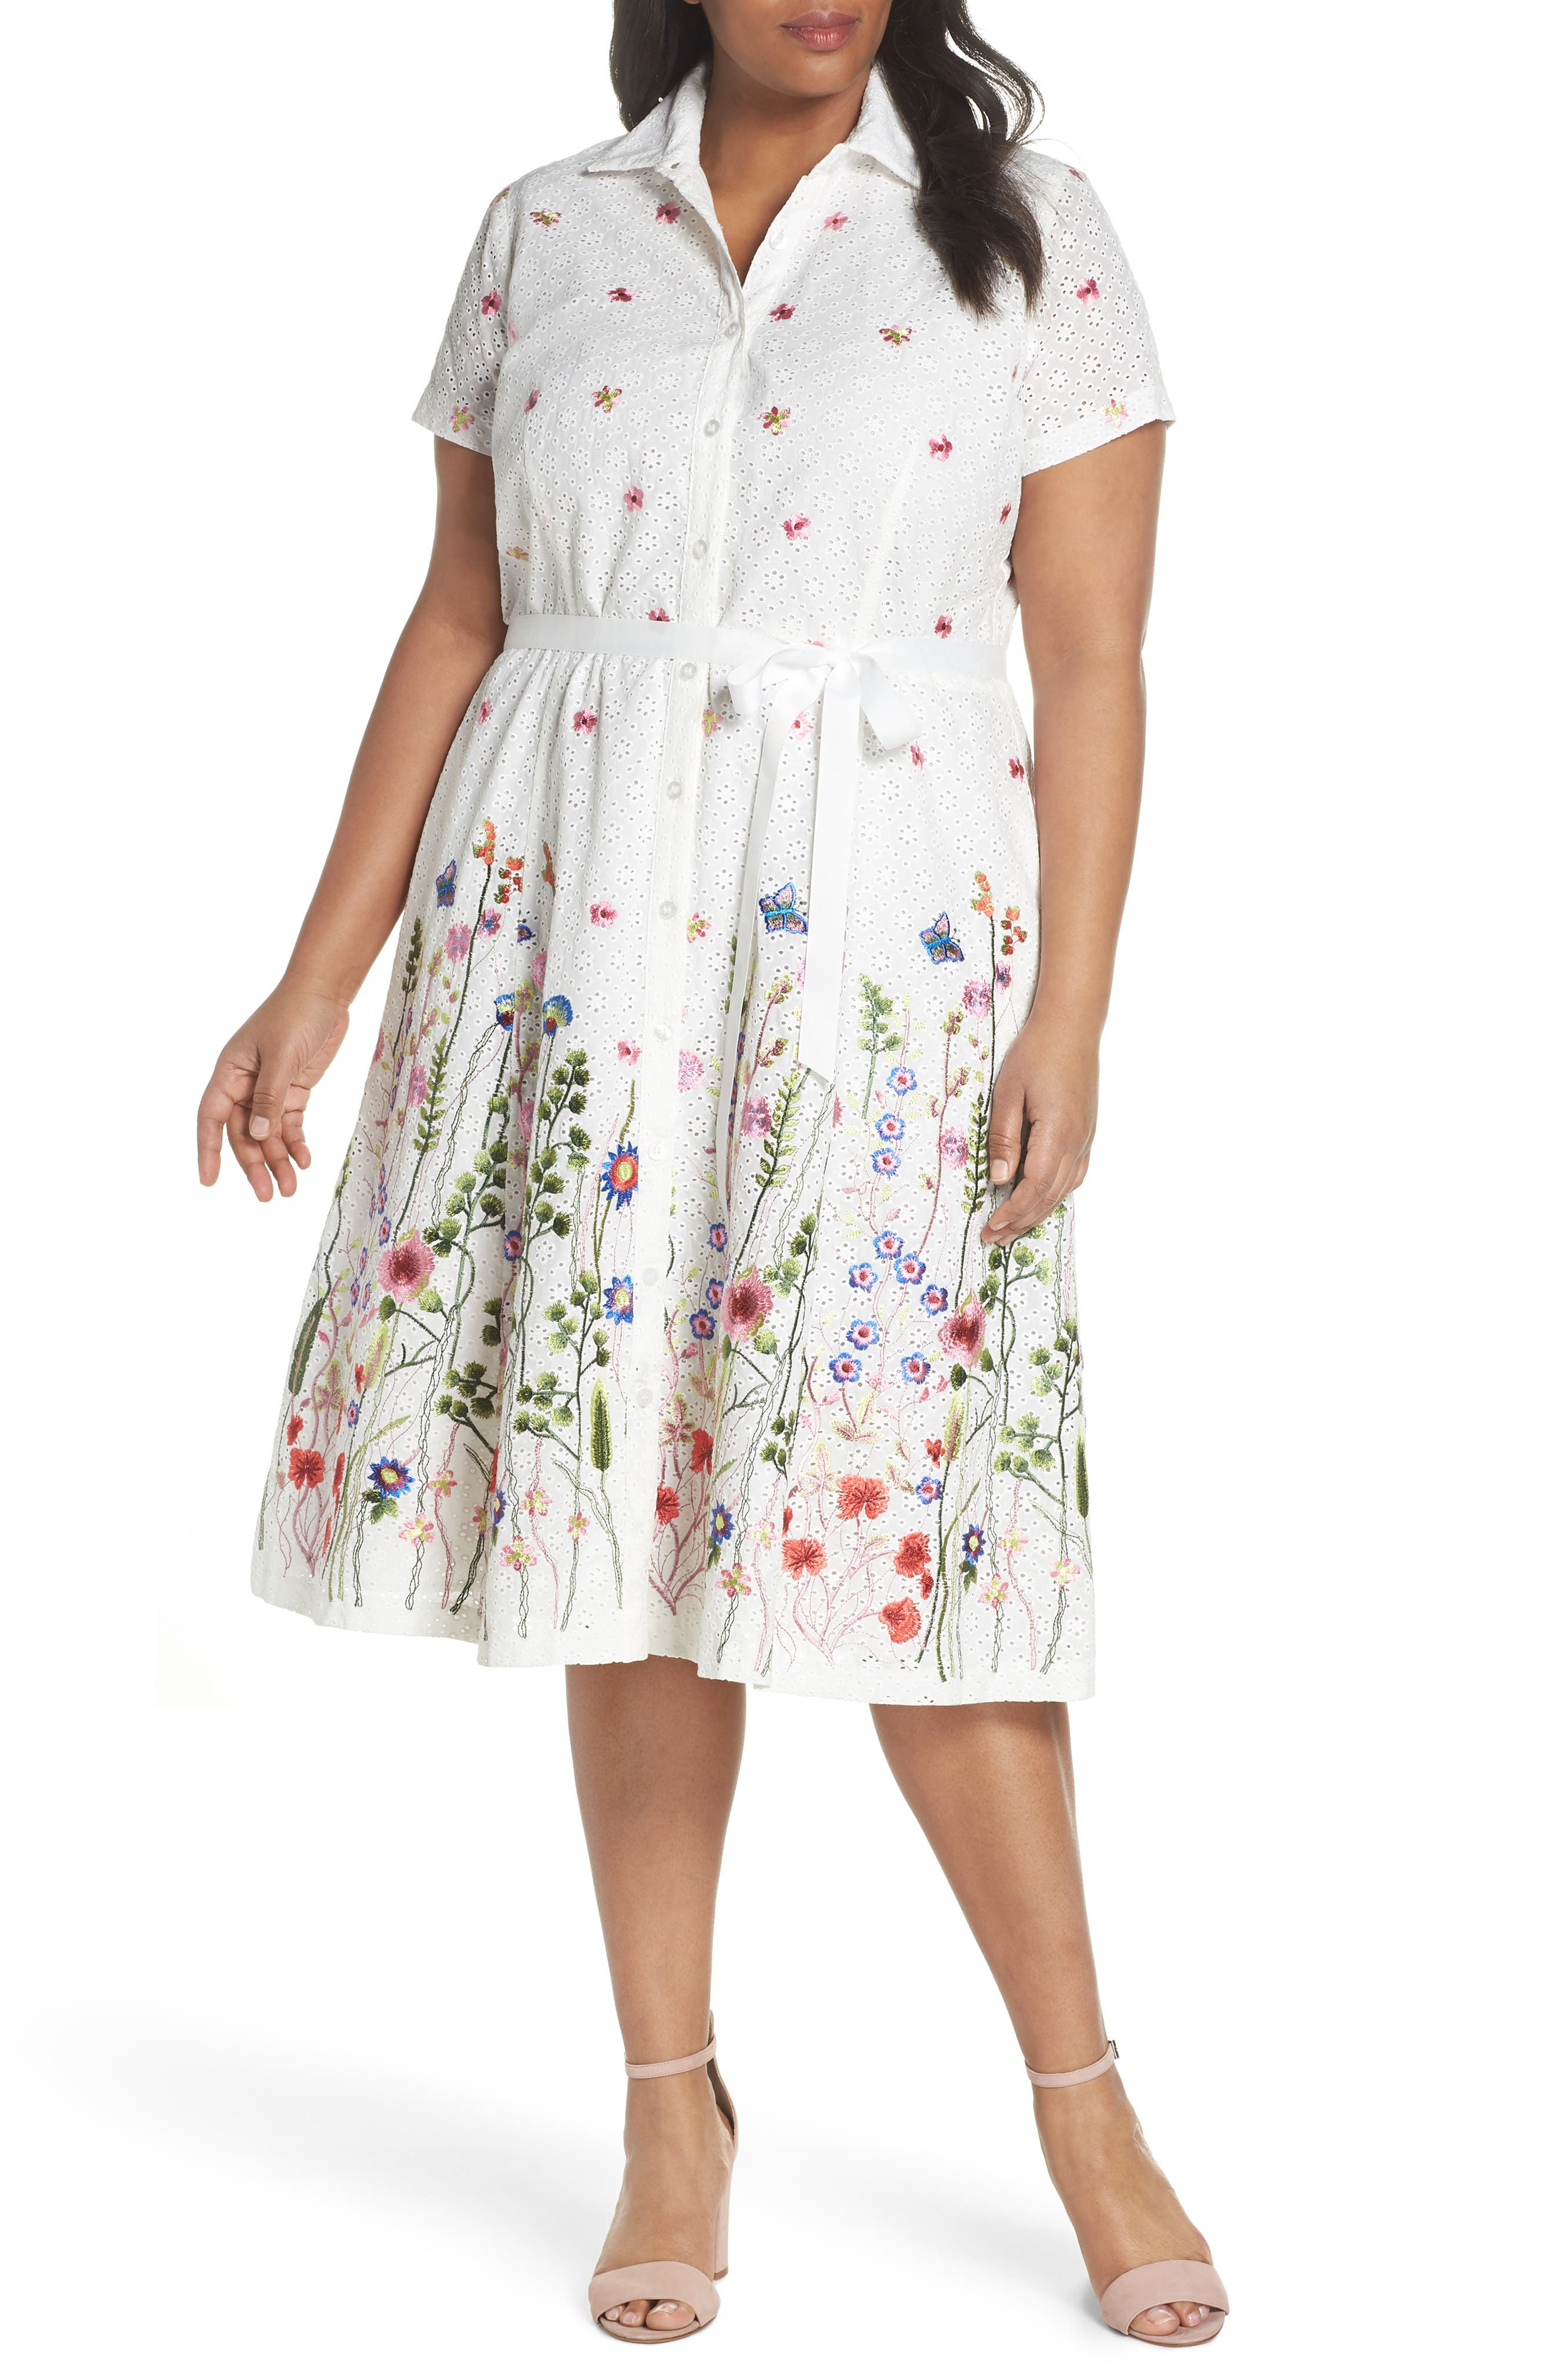 Floral Embroidered Eyelet Shirtdress,                         Main,                         color, White/ Royal/ Green